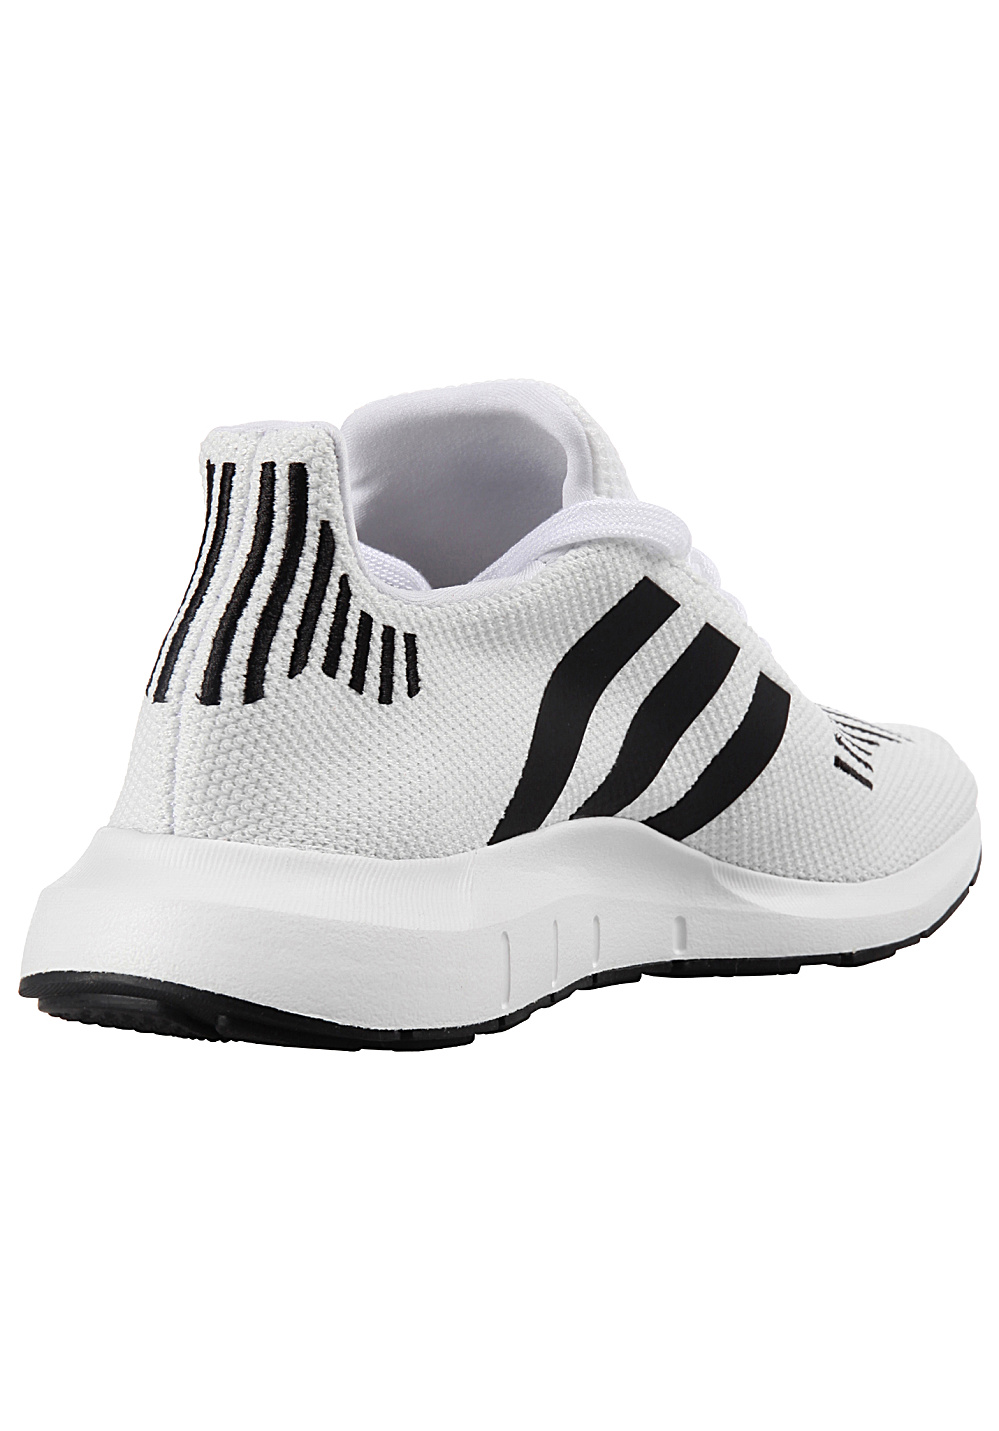 finest selection 59141 3a0a3 ADIDAS ORIGINALS Swift Run - Sneakers for Men - White - Planet Sports